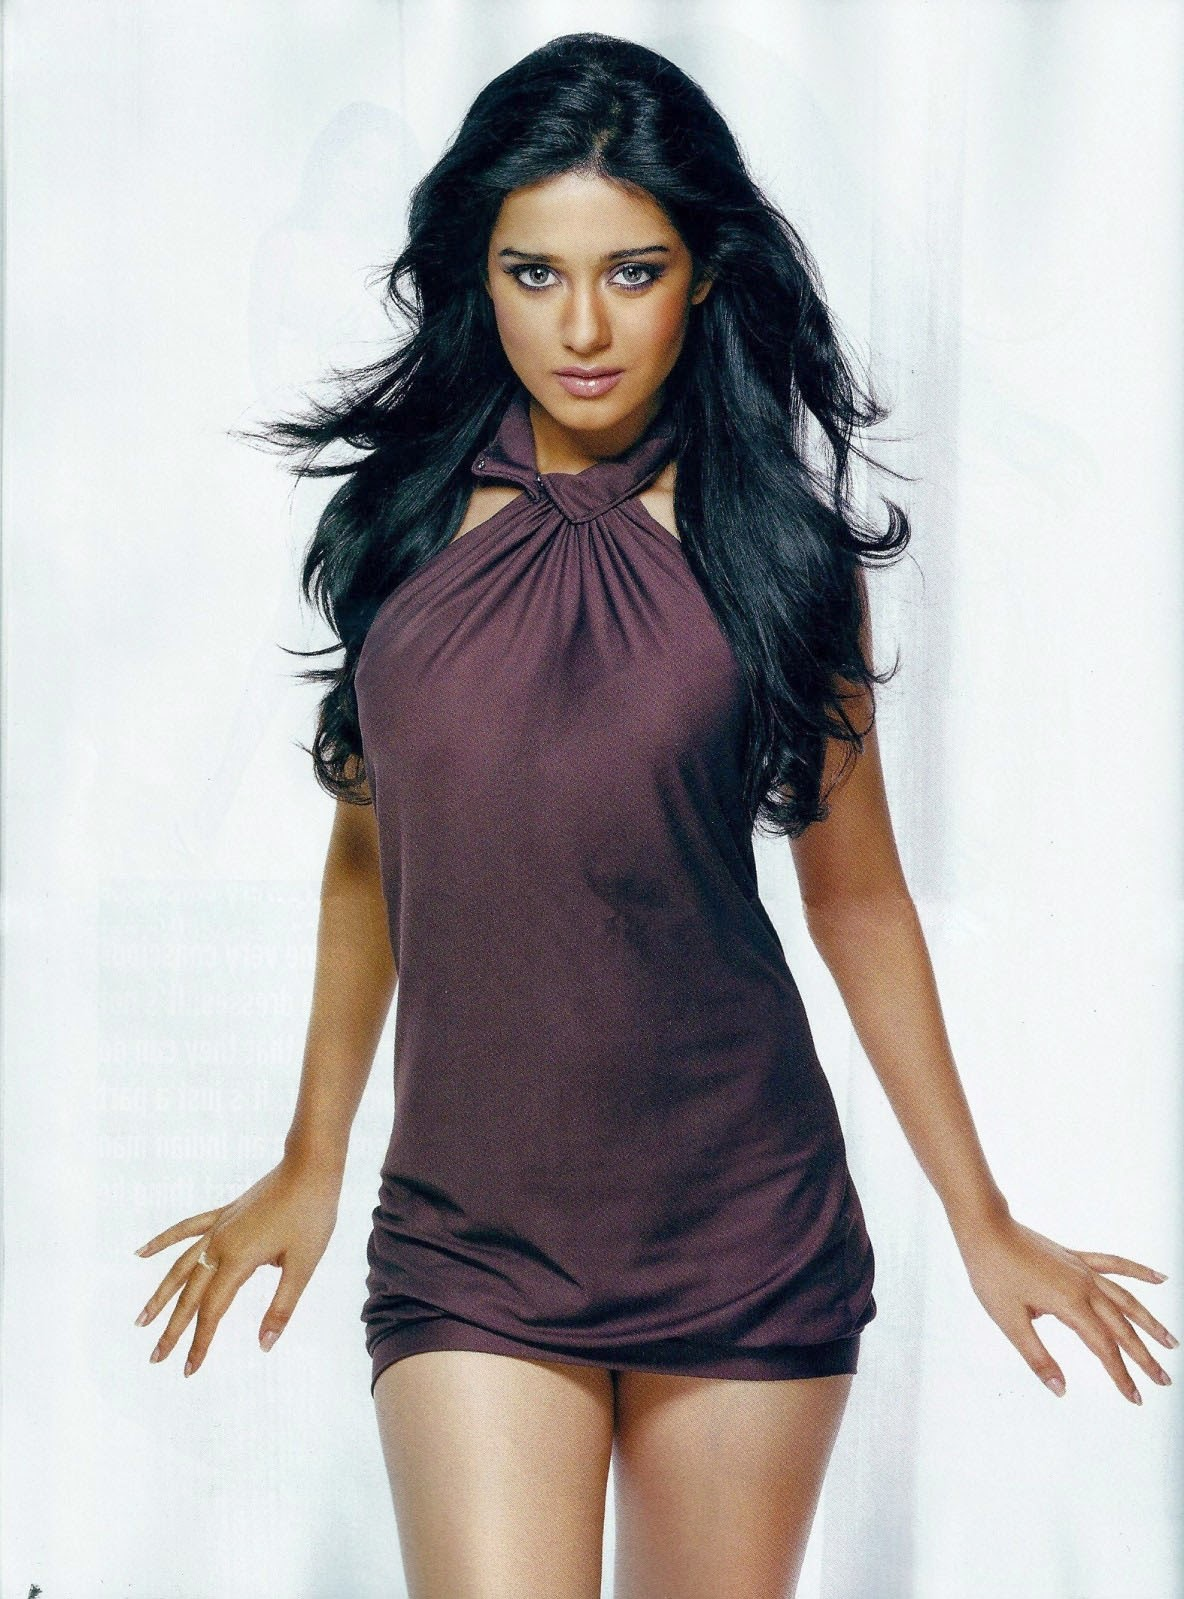 hot-amrita-rao-looking-sexy-in-purple-mini-dress